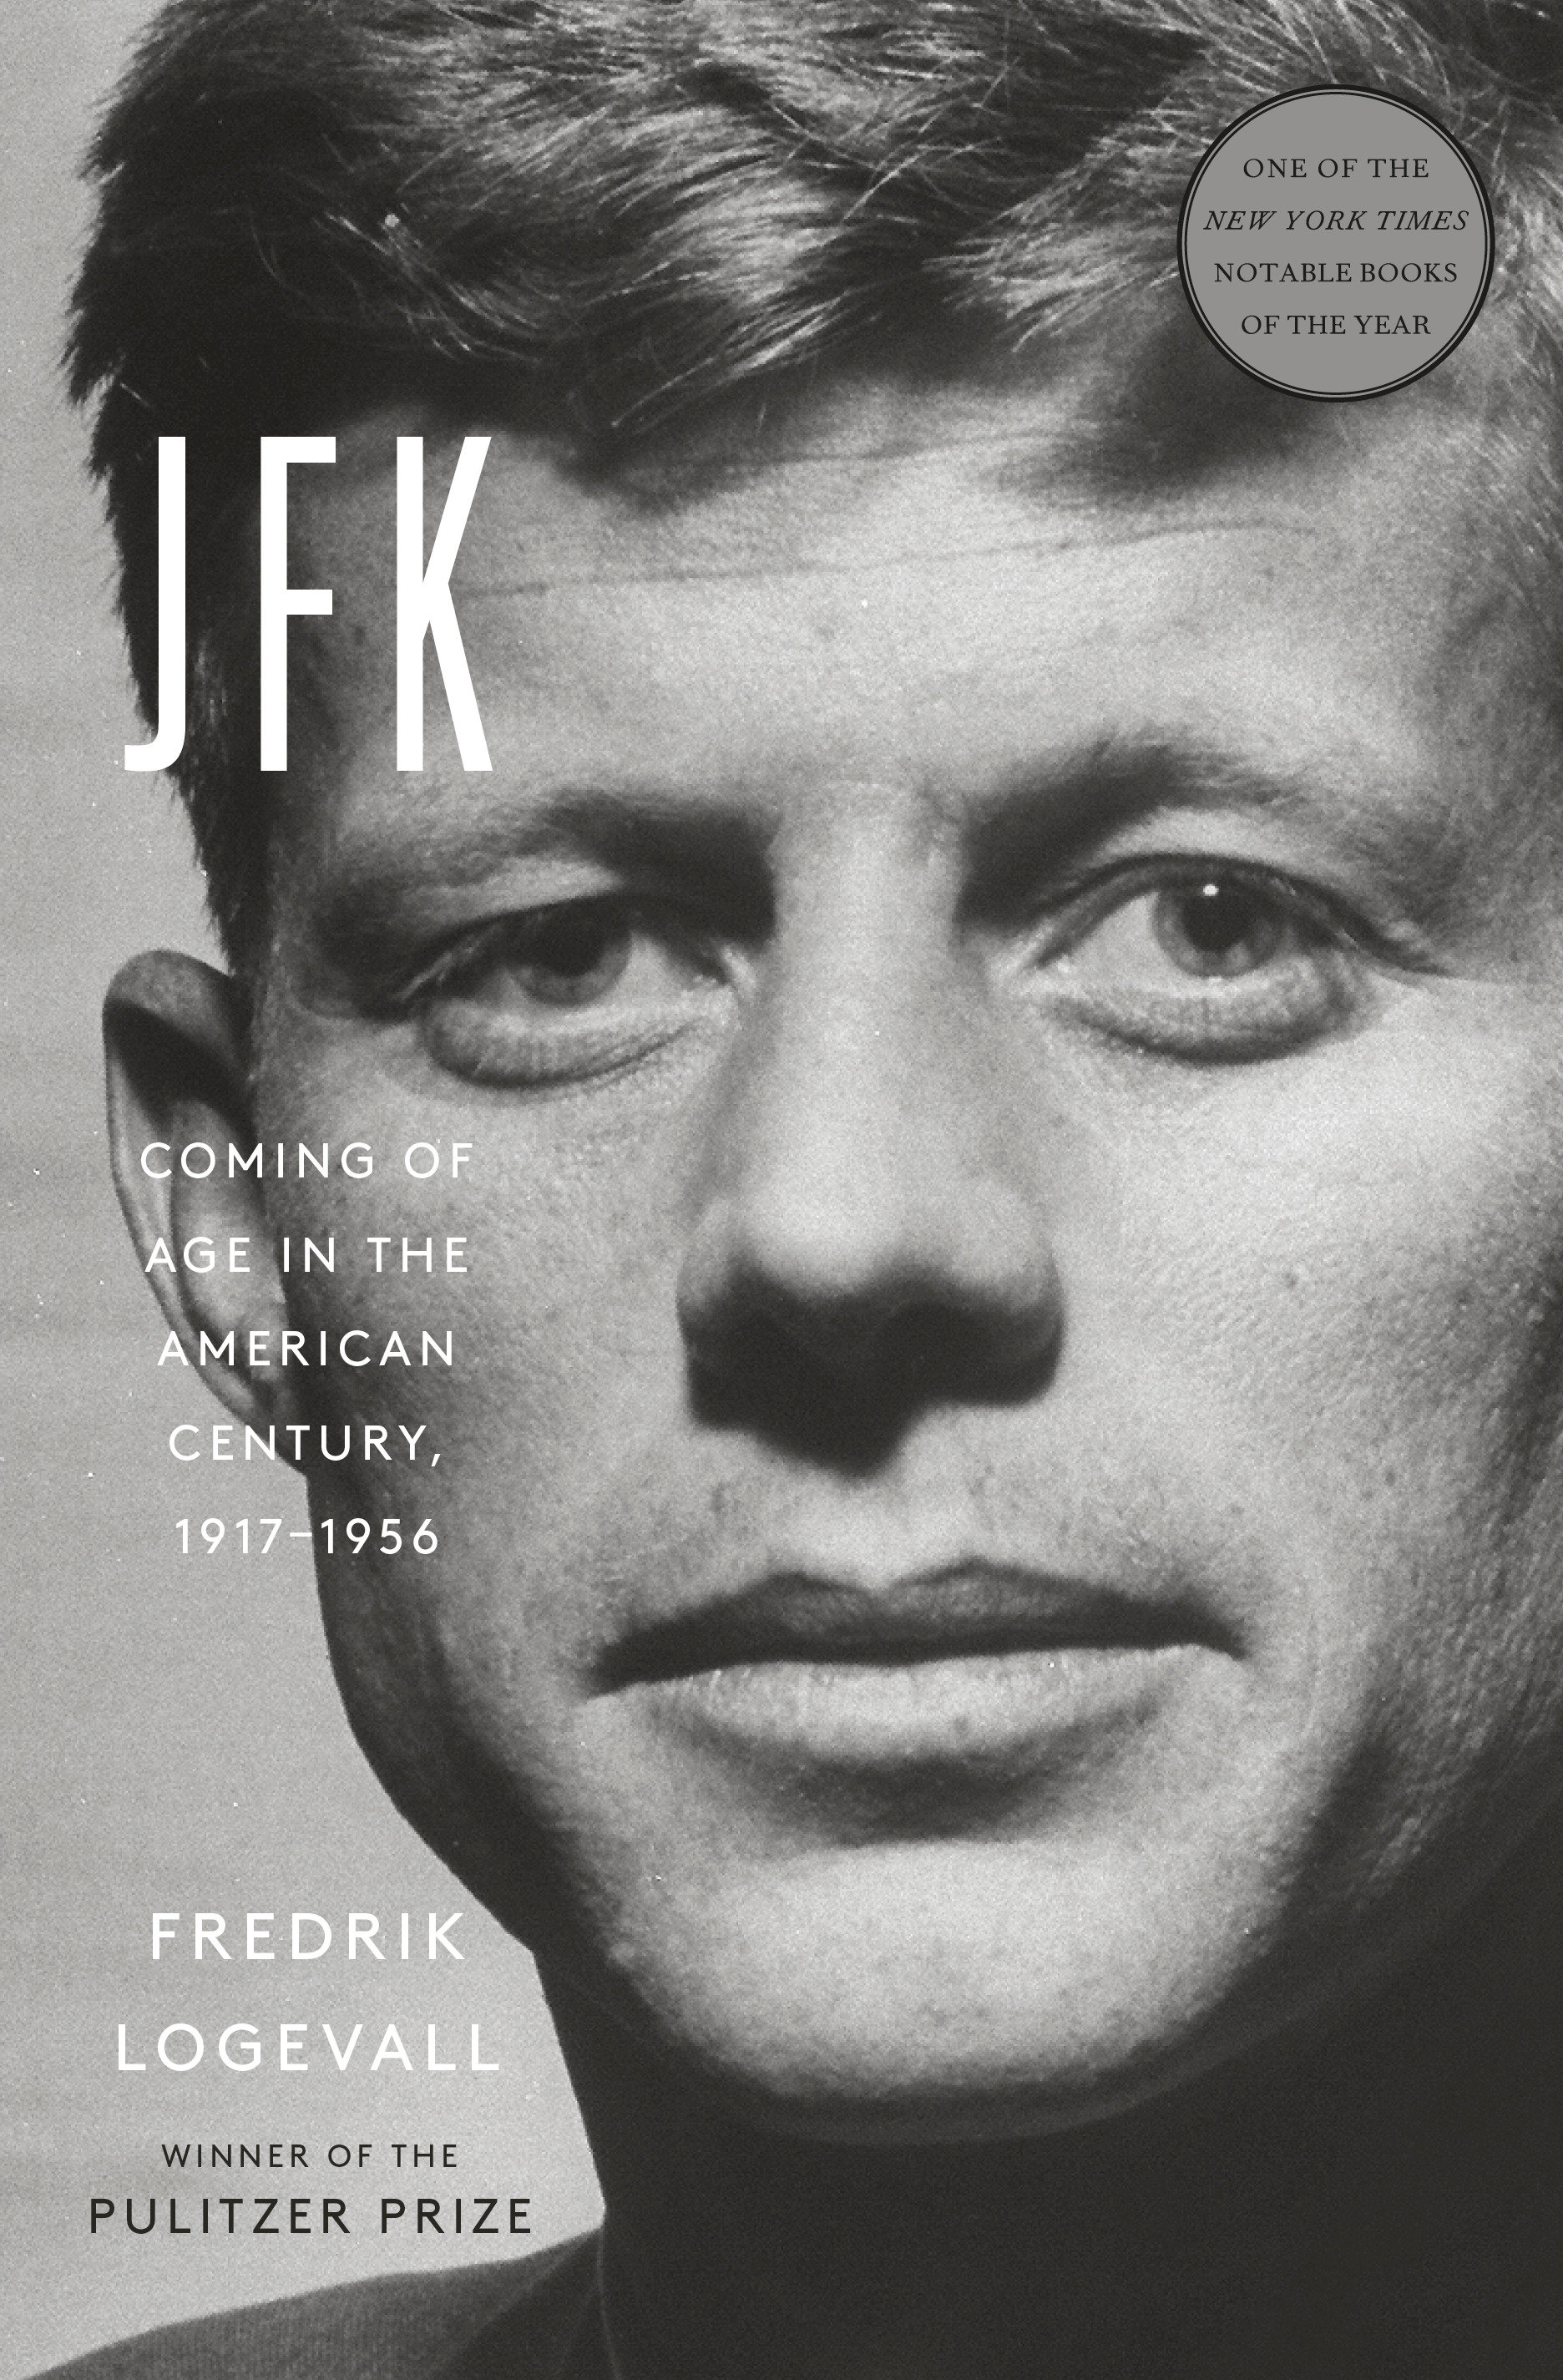 JFK Coming of Age in the American Century, 1917-1956